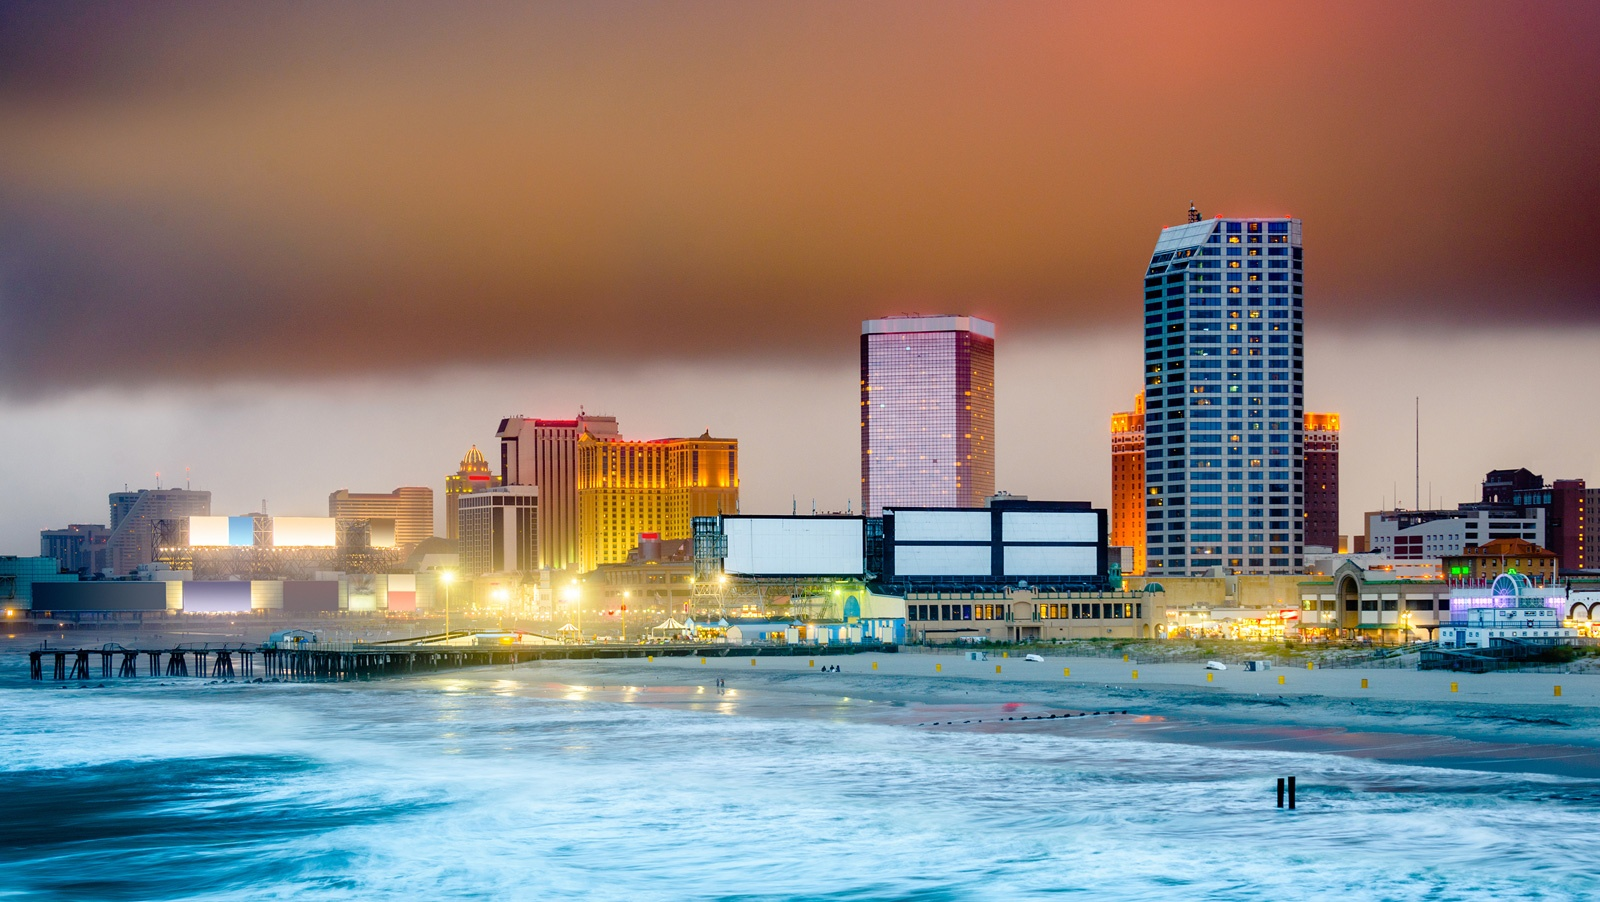 Atlantic City is due for a big win in 2018, gambling operator says